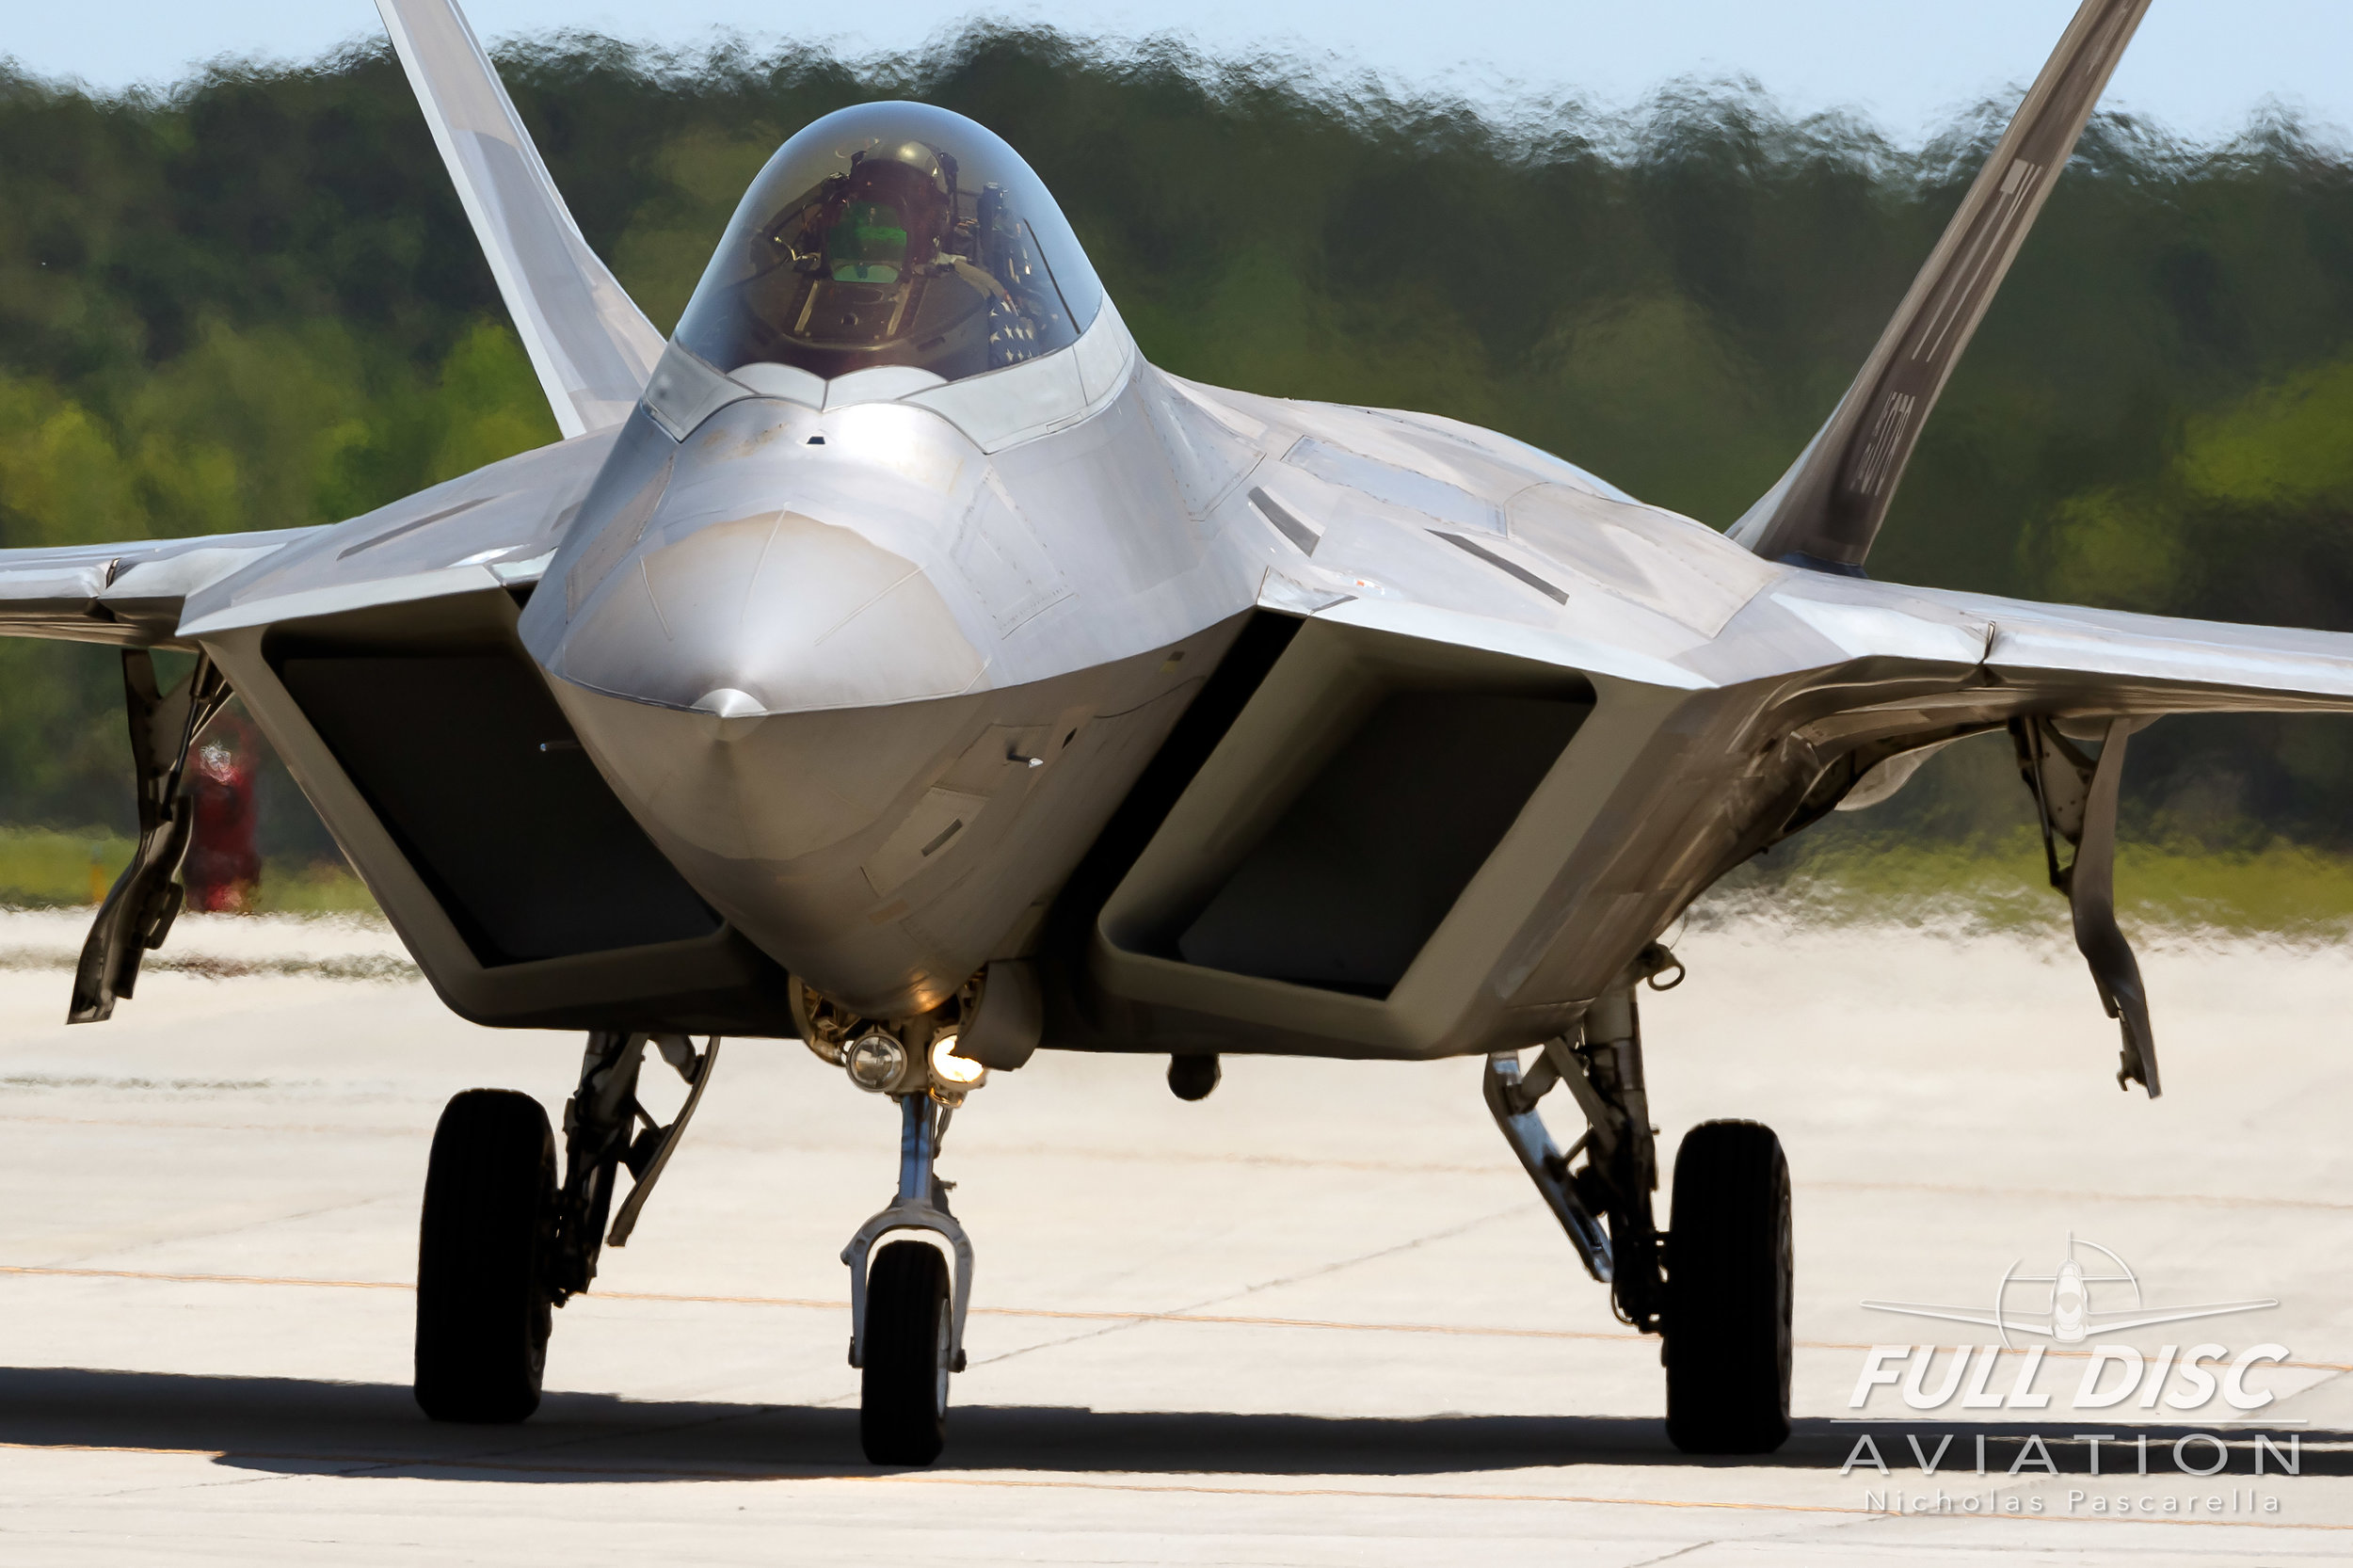 f22_inyourface_raptor_nicholaspascarella_fulldiscavation_aviation_airshow.jpg